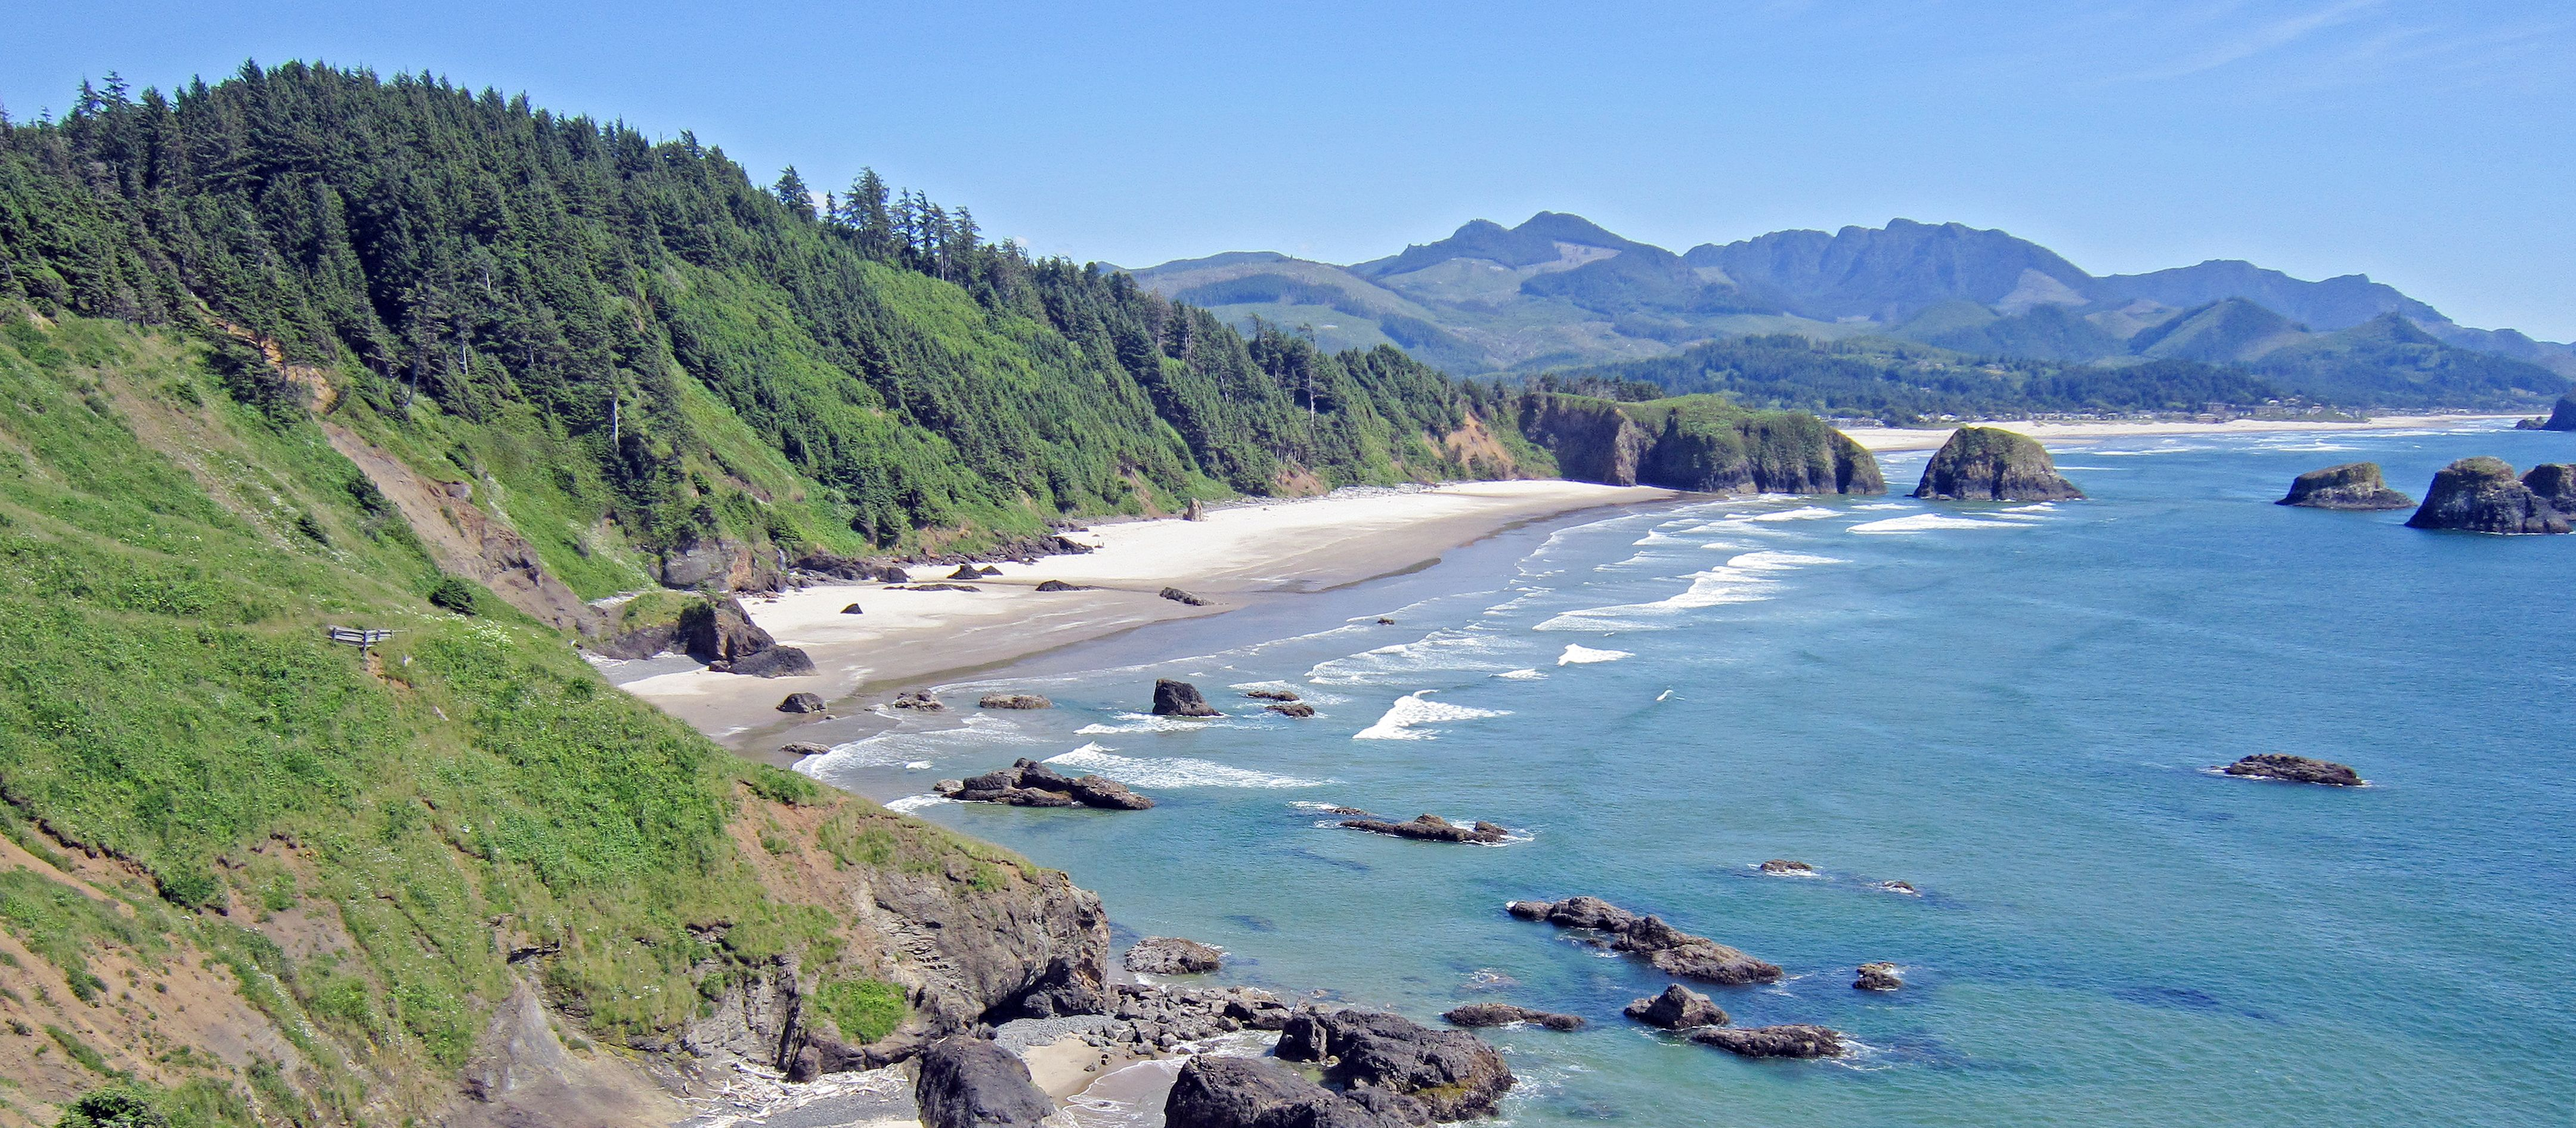 Einsame Natur am Cannon Beach